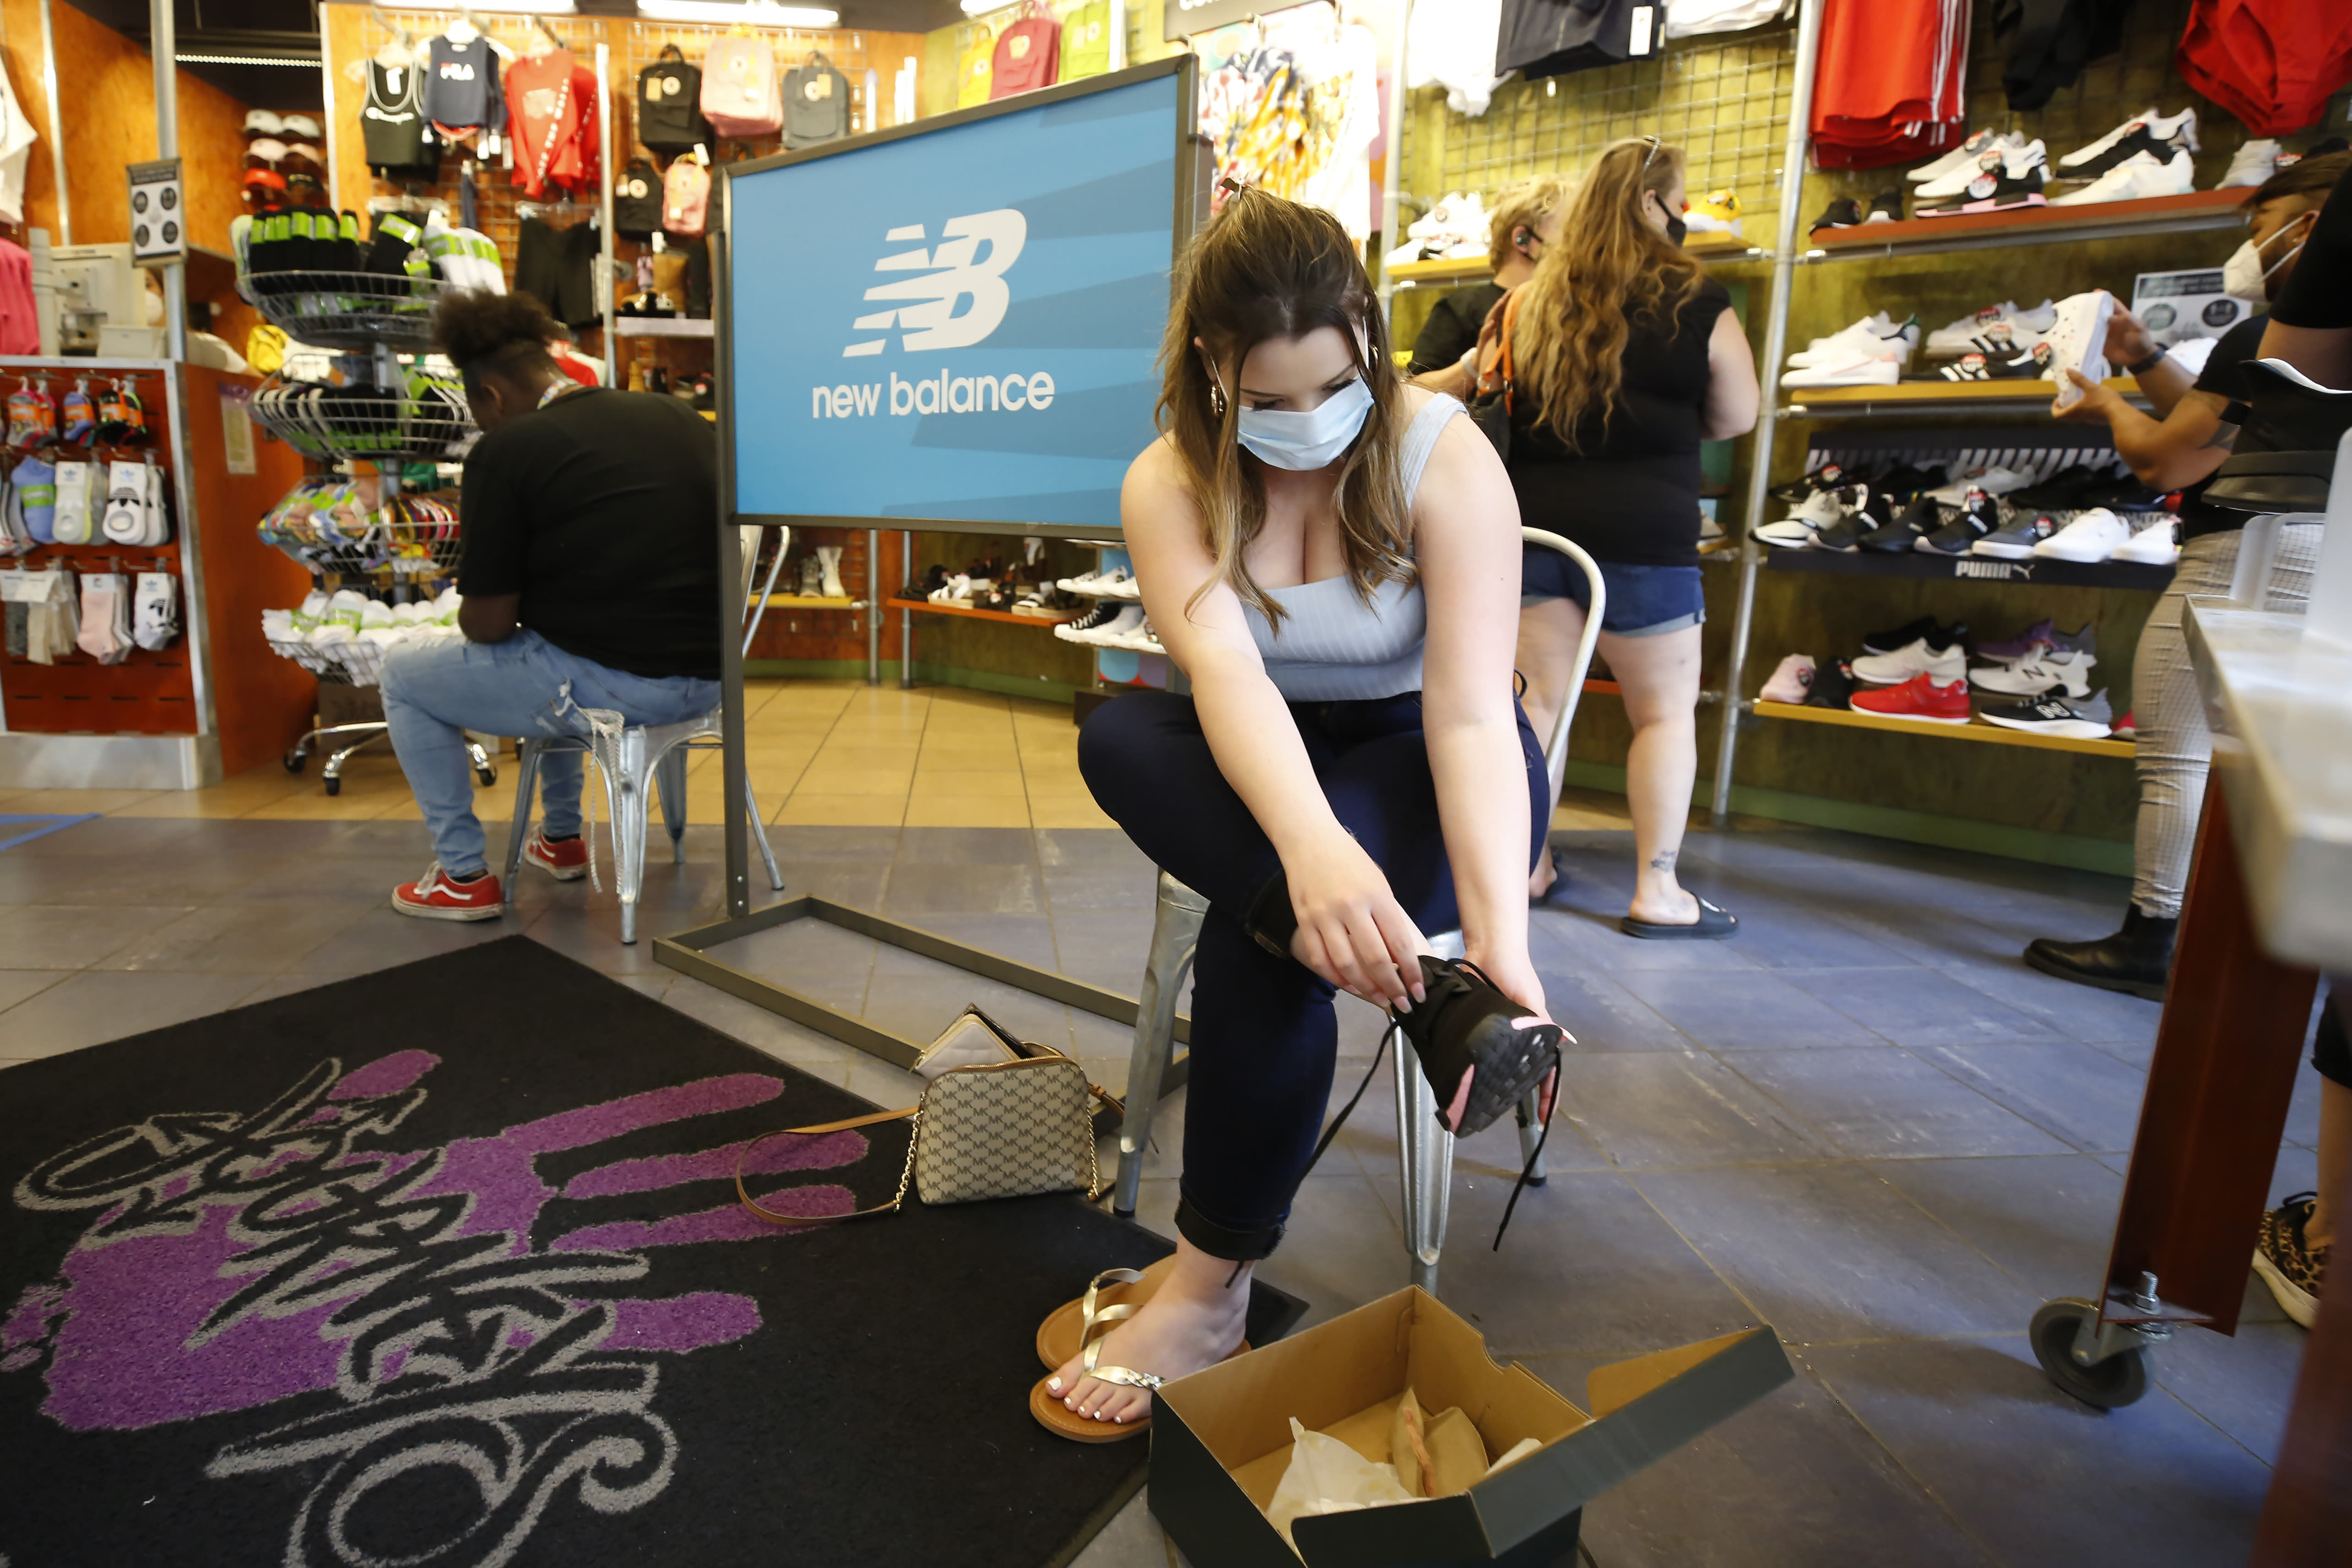 Allie Arredonodo, wears a face mask as she tries on shoes at Journey's shoe store in the Yuba Sutter Mall in Yuba City, Calif., Wednesday, May 6, 2020. Several dozen shoppers streamed into the first California mall to reopen Wednesday, despite Gov. Gavin Newsom's orders restraining businesses because of the coronavirus pandemic. (AP Photo/Rich Pedroncelli)